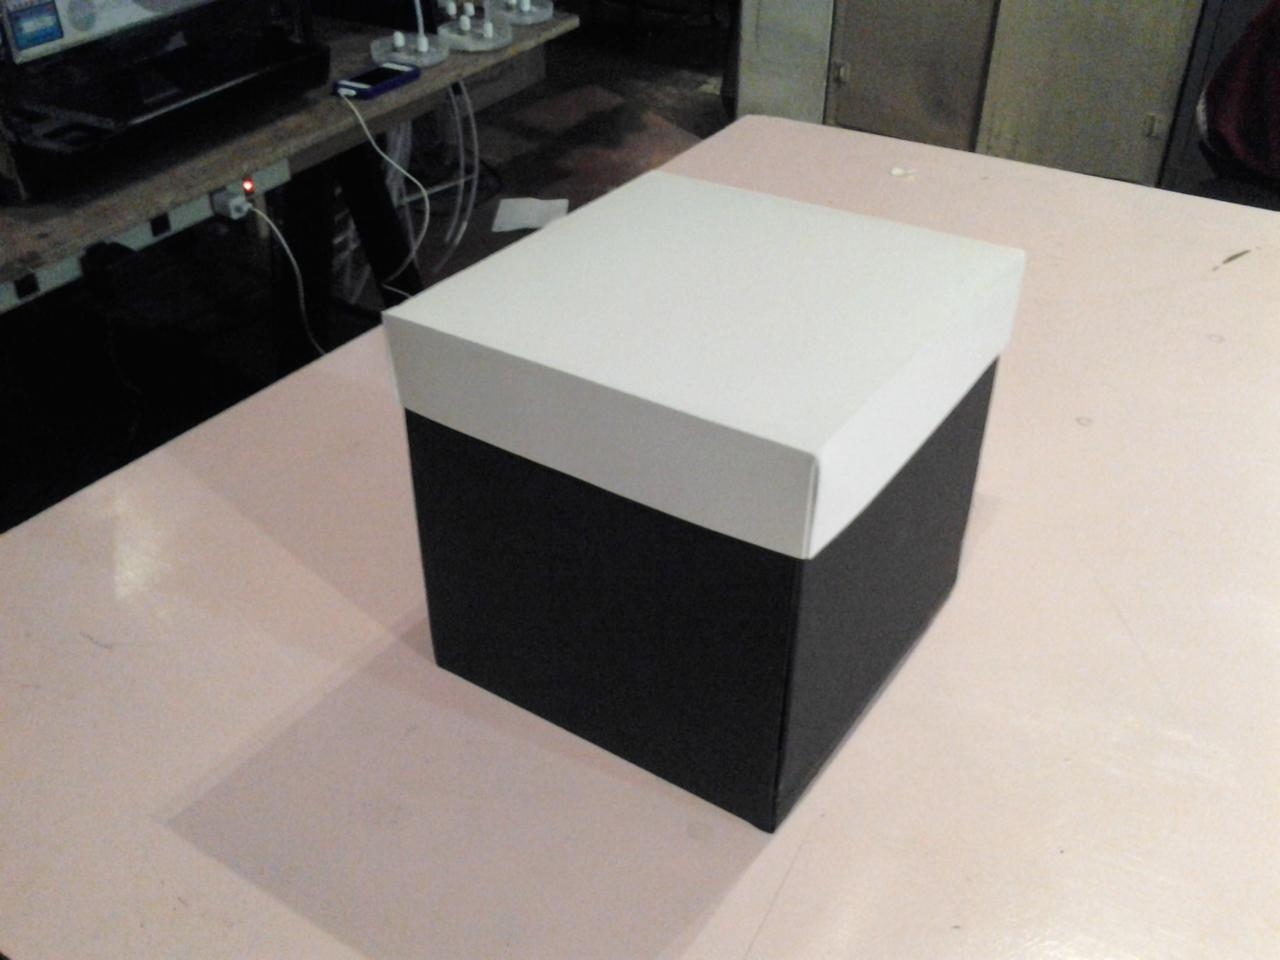 Remove the lid of the Piano Box and three sides fall flat against the table top, two hold speakers and the other features a touch sensitive 12-key piano/synth keyboard